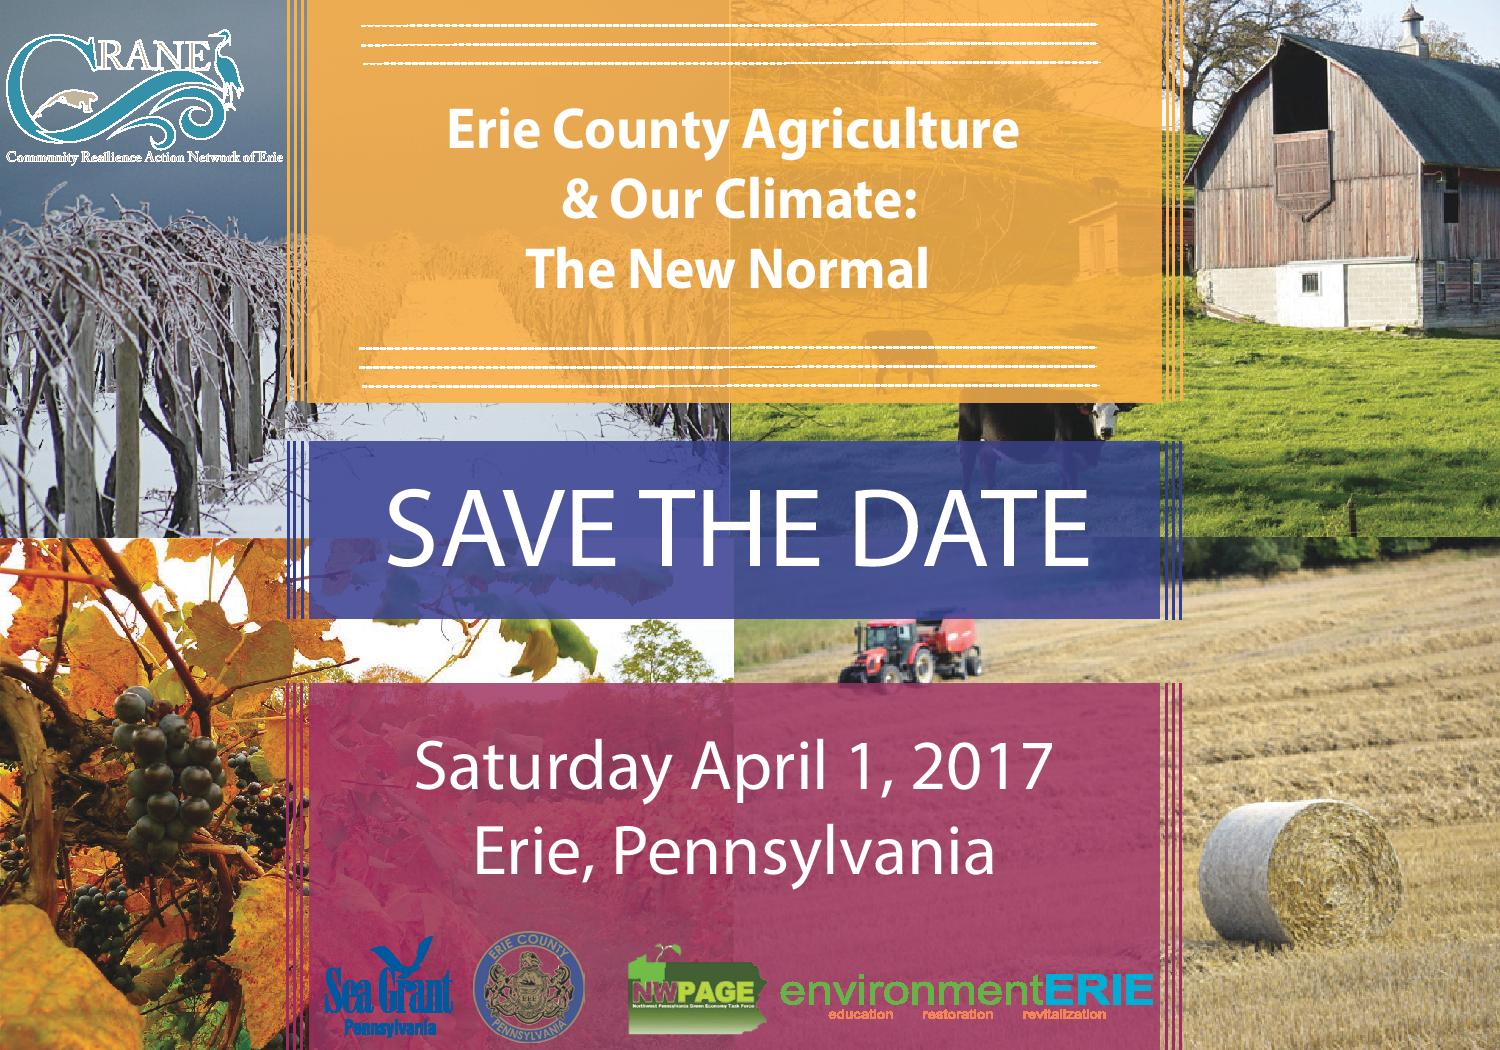 Agriculture summit save the date